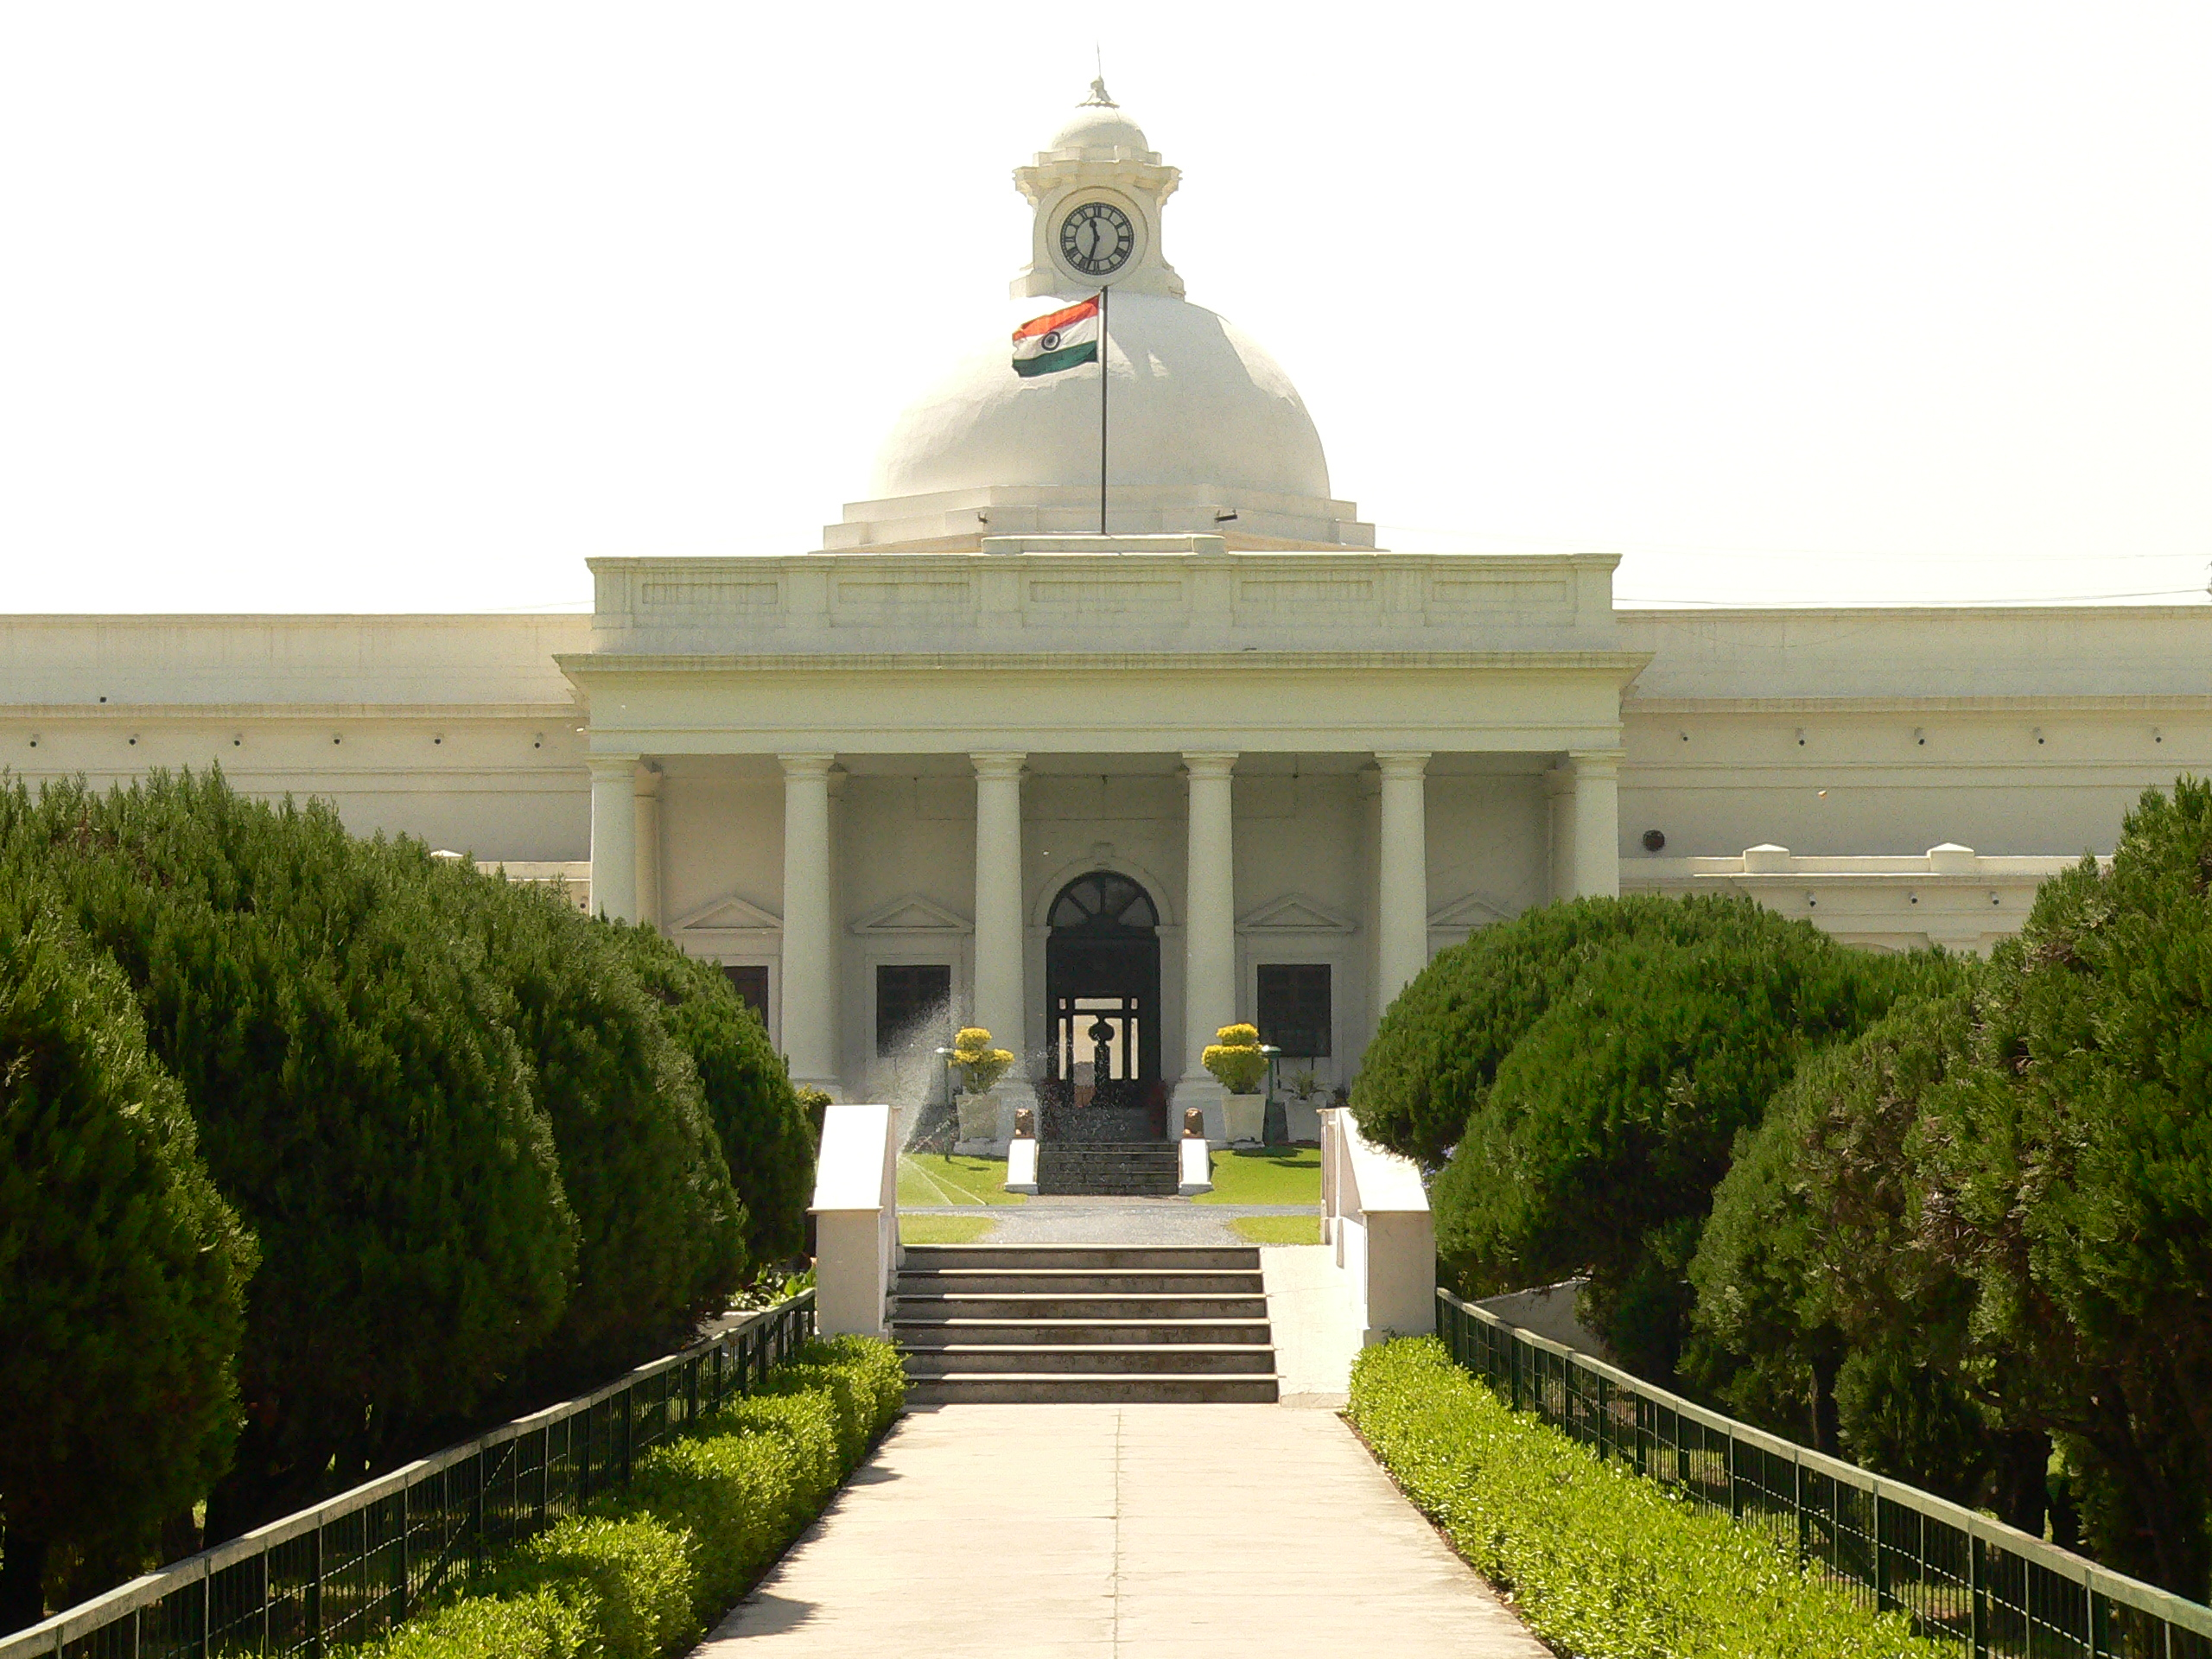 Main (Administrative) Building, Indian Institute of Technology, Roorkee